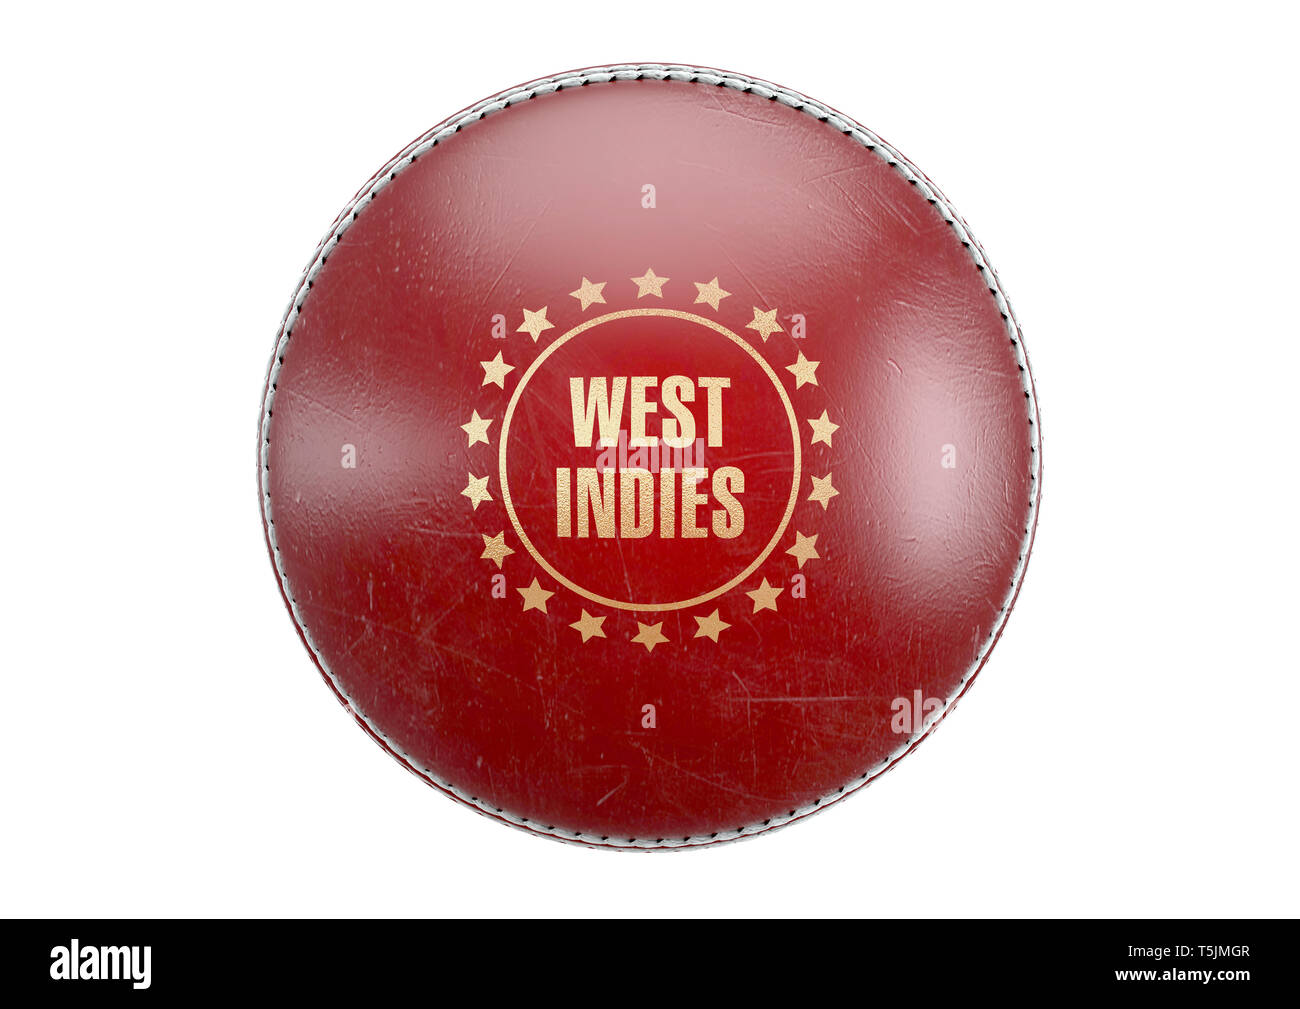 Image result for west indies name